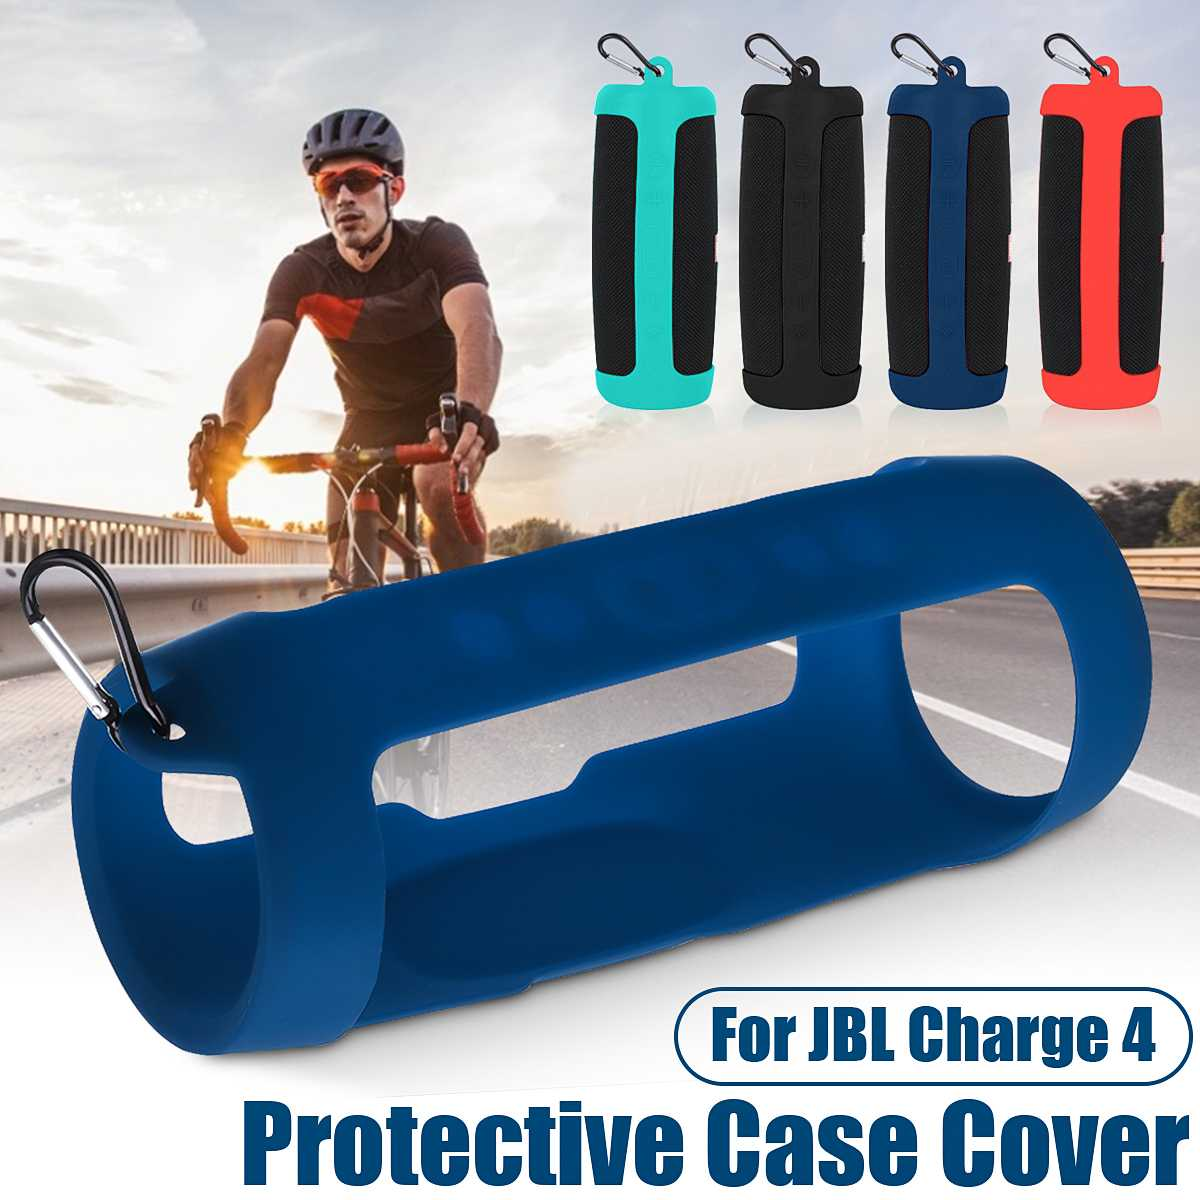 Silicone Protective Case Non-Slip Protective Cover For JBL Charge 4 bluetooth Speaker Shookproof Durable Eco-friendly Soft Cover